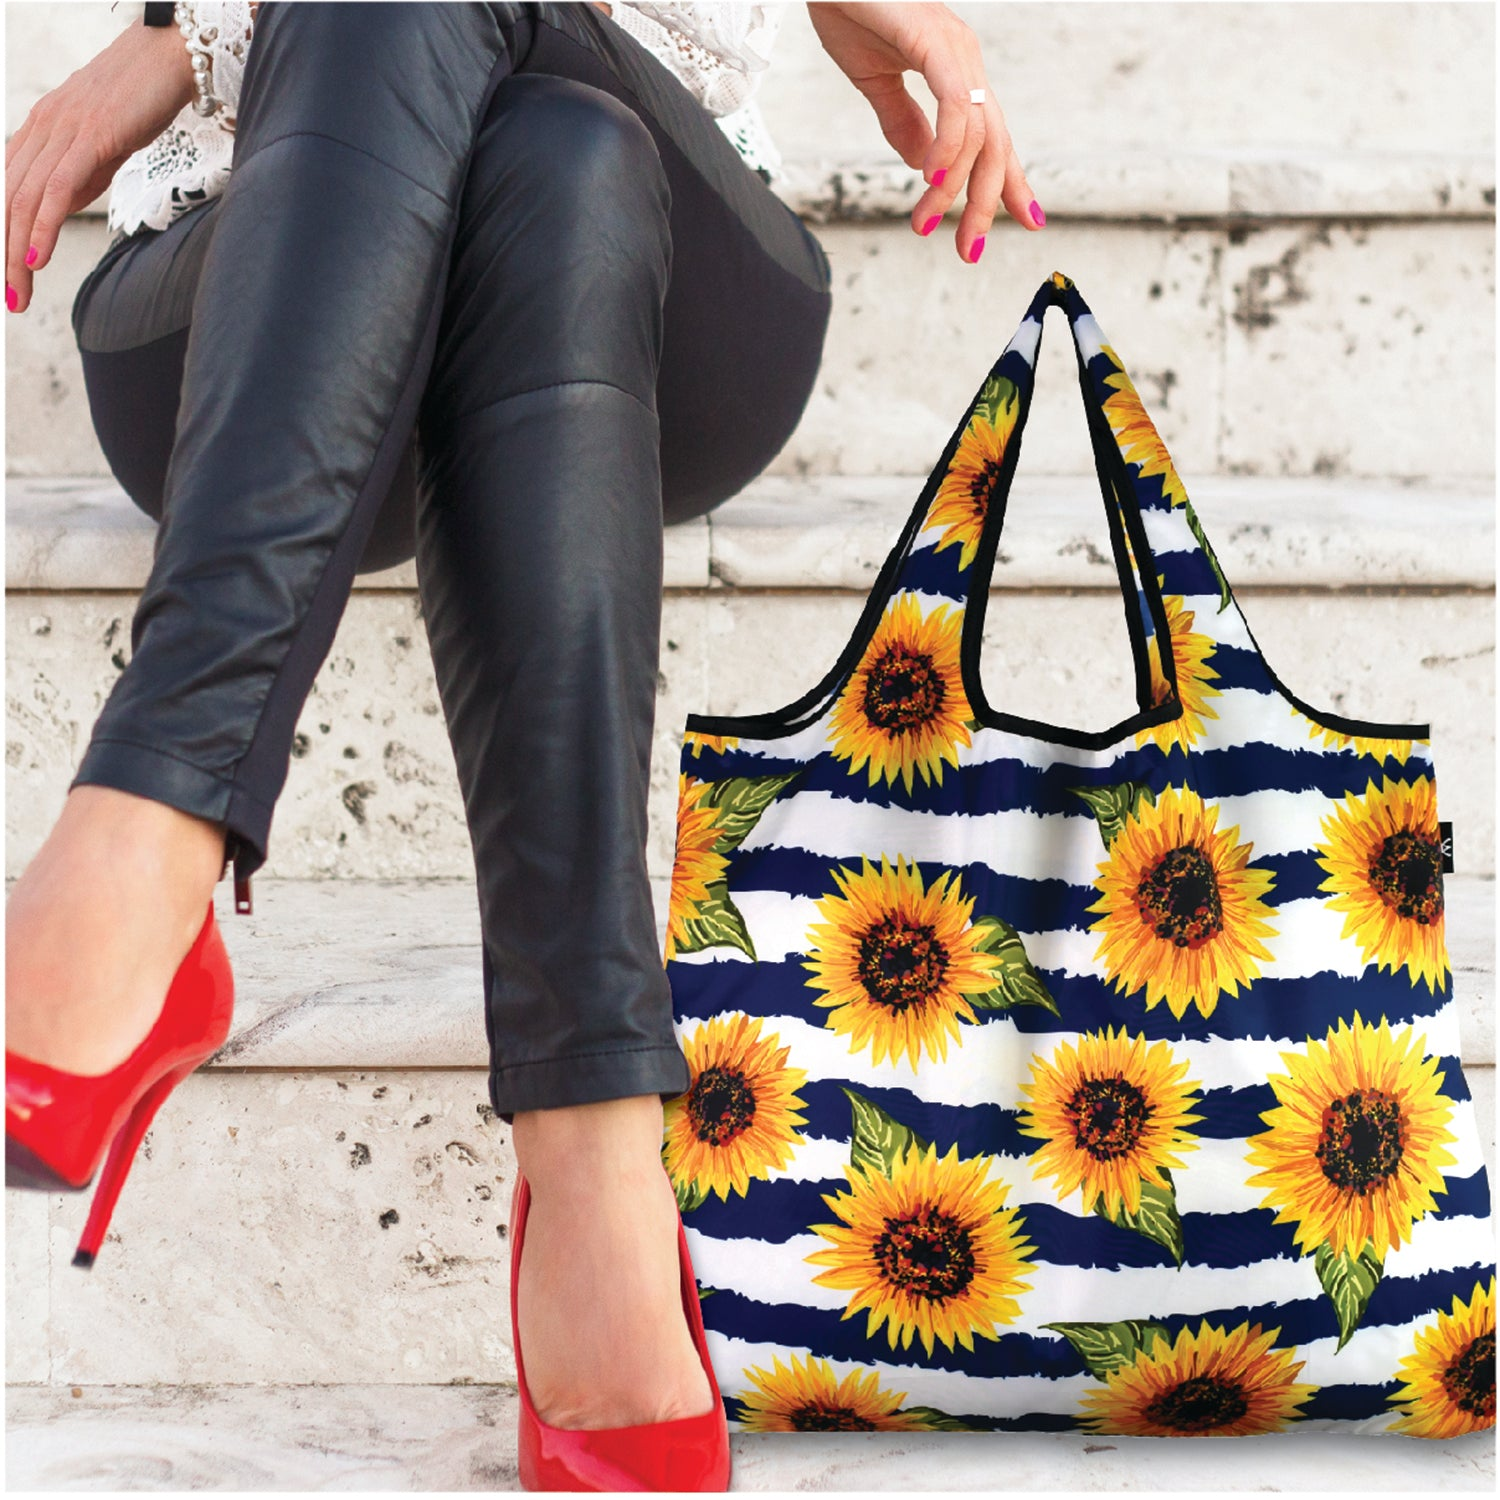 Sunflower Reusable YaYbag